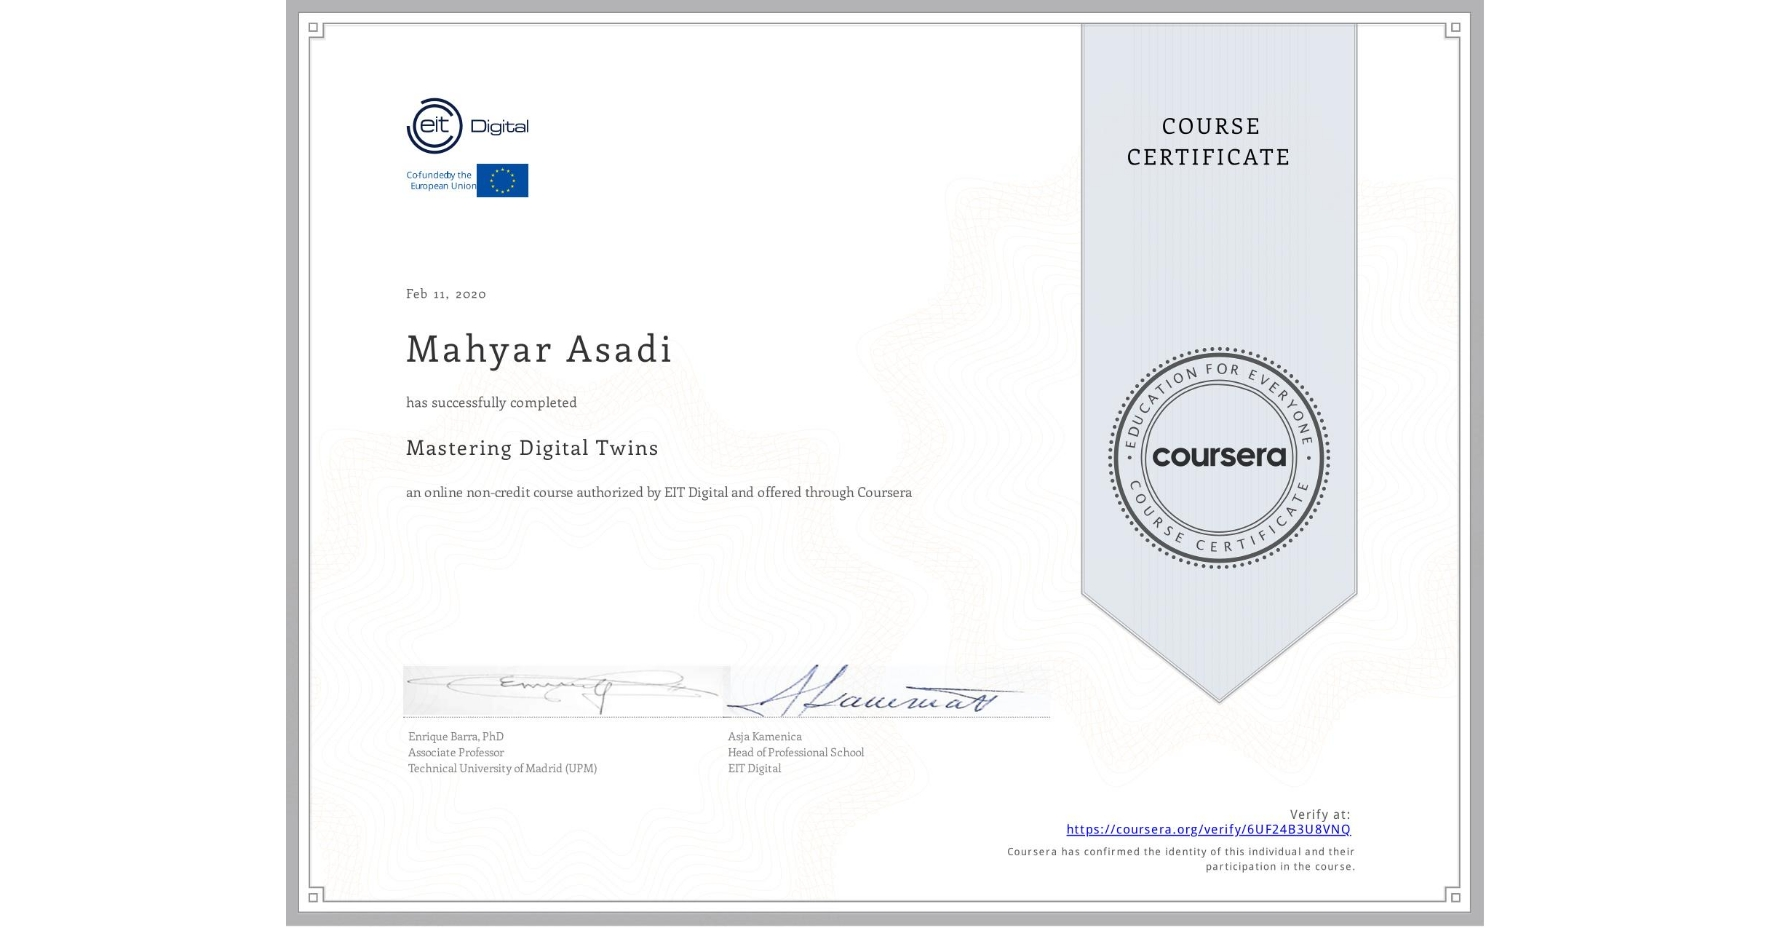 View certificate for Mahyar Asadi, Mastering Digital Twins, an online non-credit course authorized by EIT Digital  and offered through Coursera